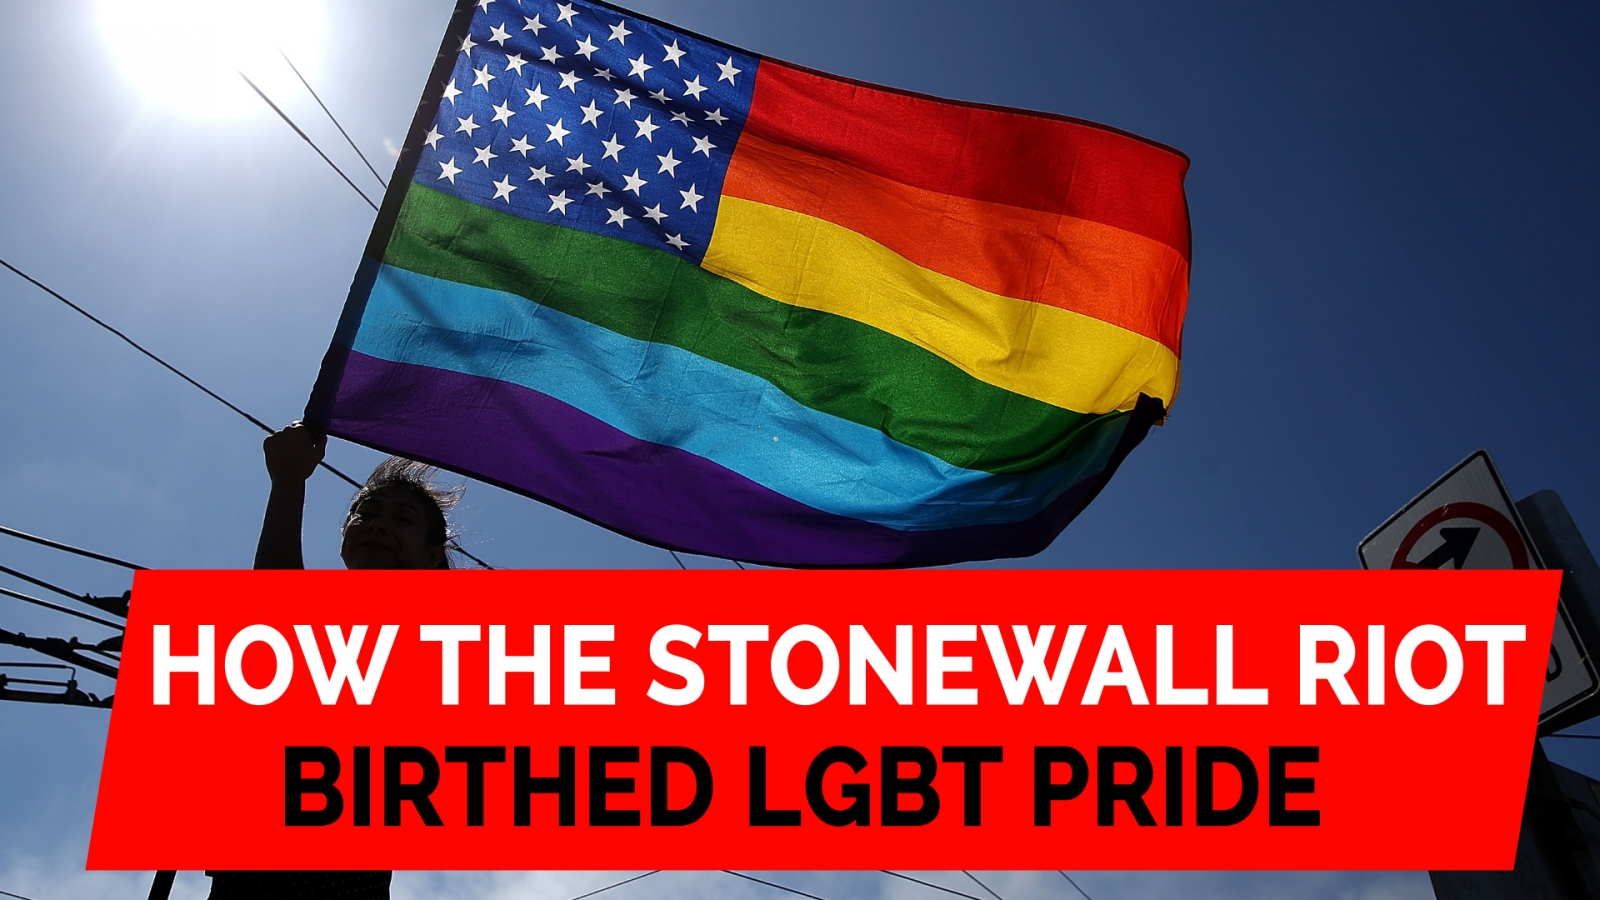 how-the-stonewall-riot-birthed-lgbt-pride